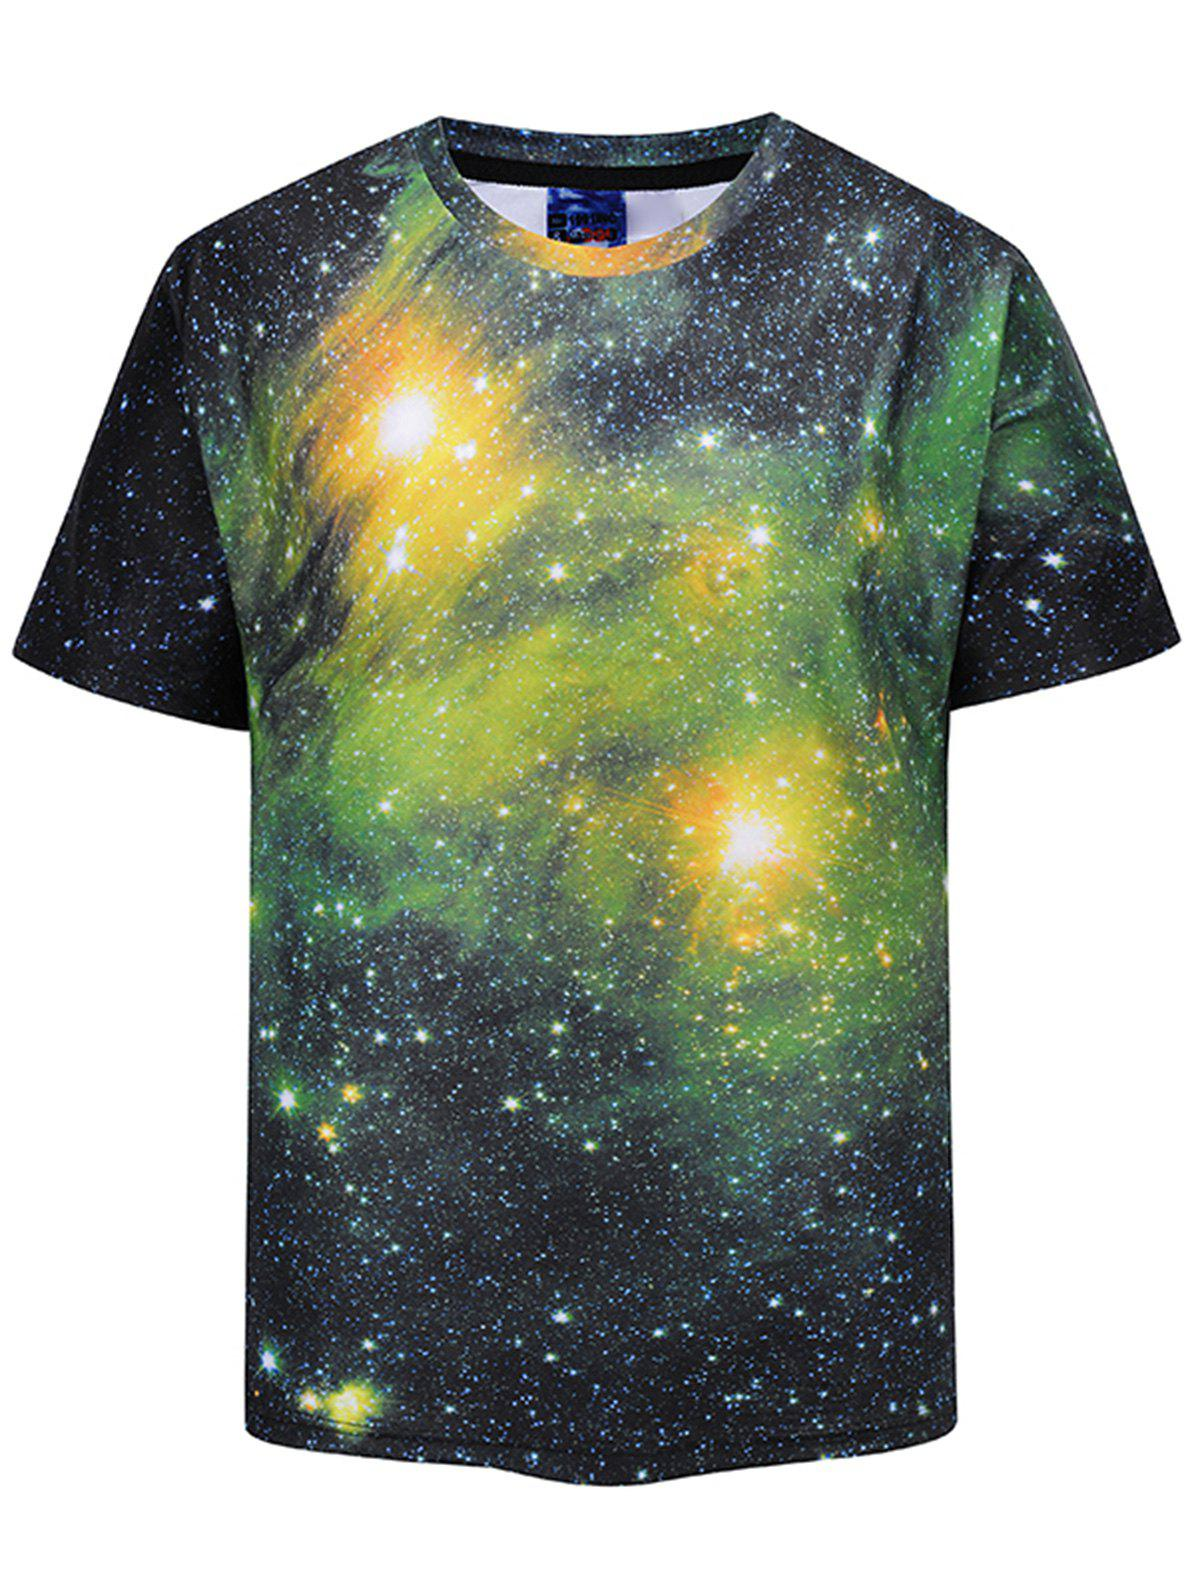 Crew Neck 3D Print Galaxy T-shirt 3d galaxy print crew neck trippy t shirt